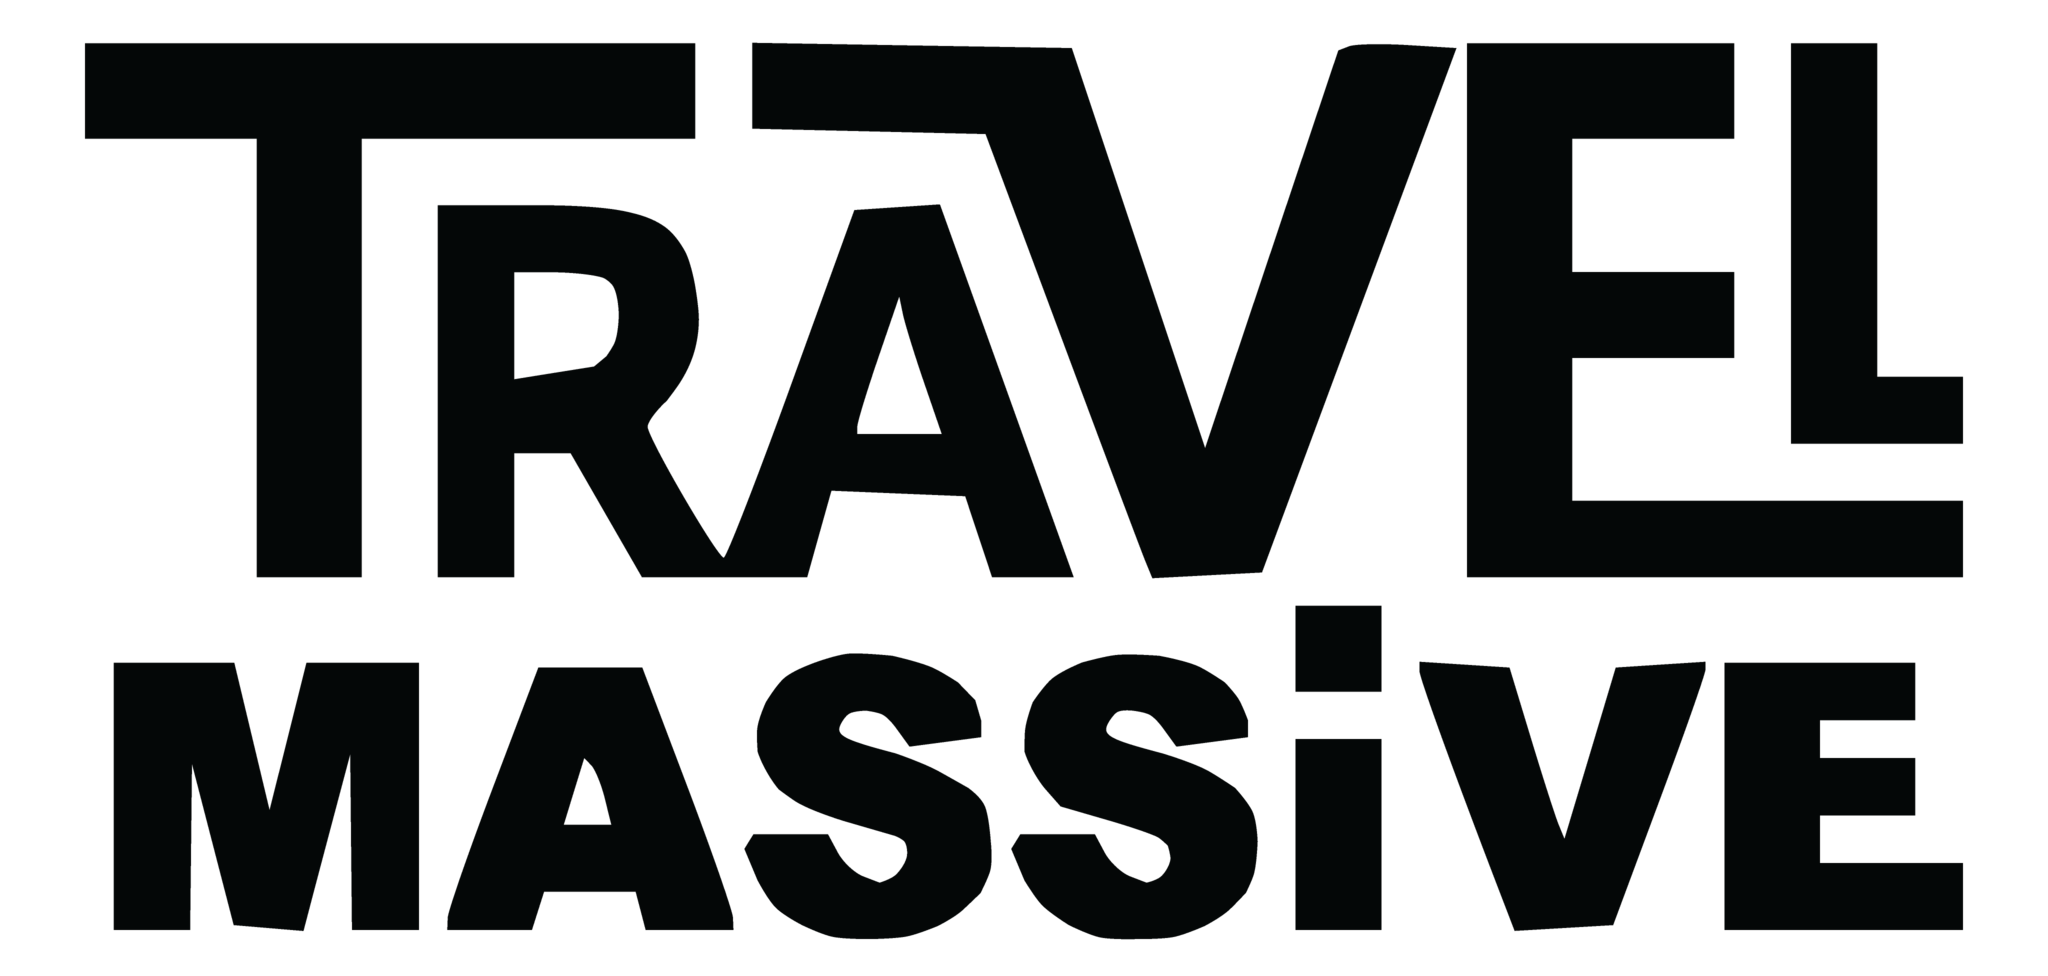 Travel-Massive-Black-on-Transparent-2048x20481.png